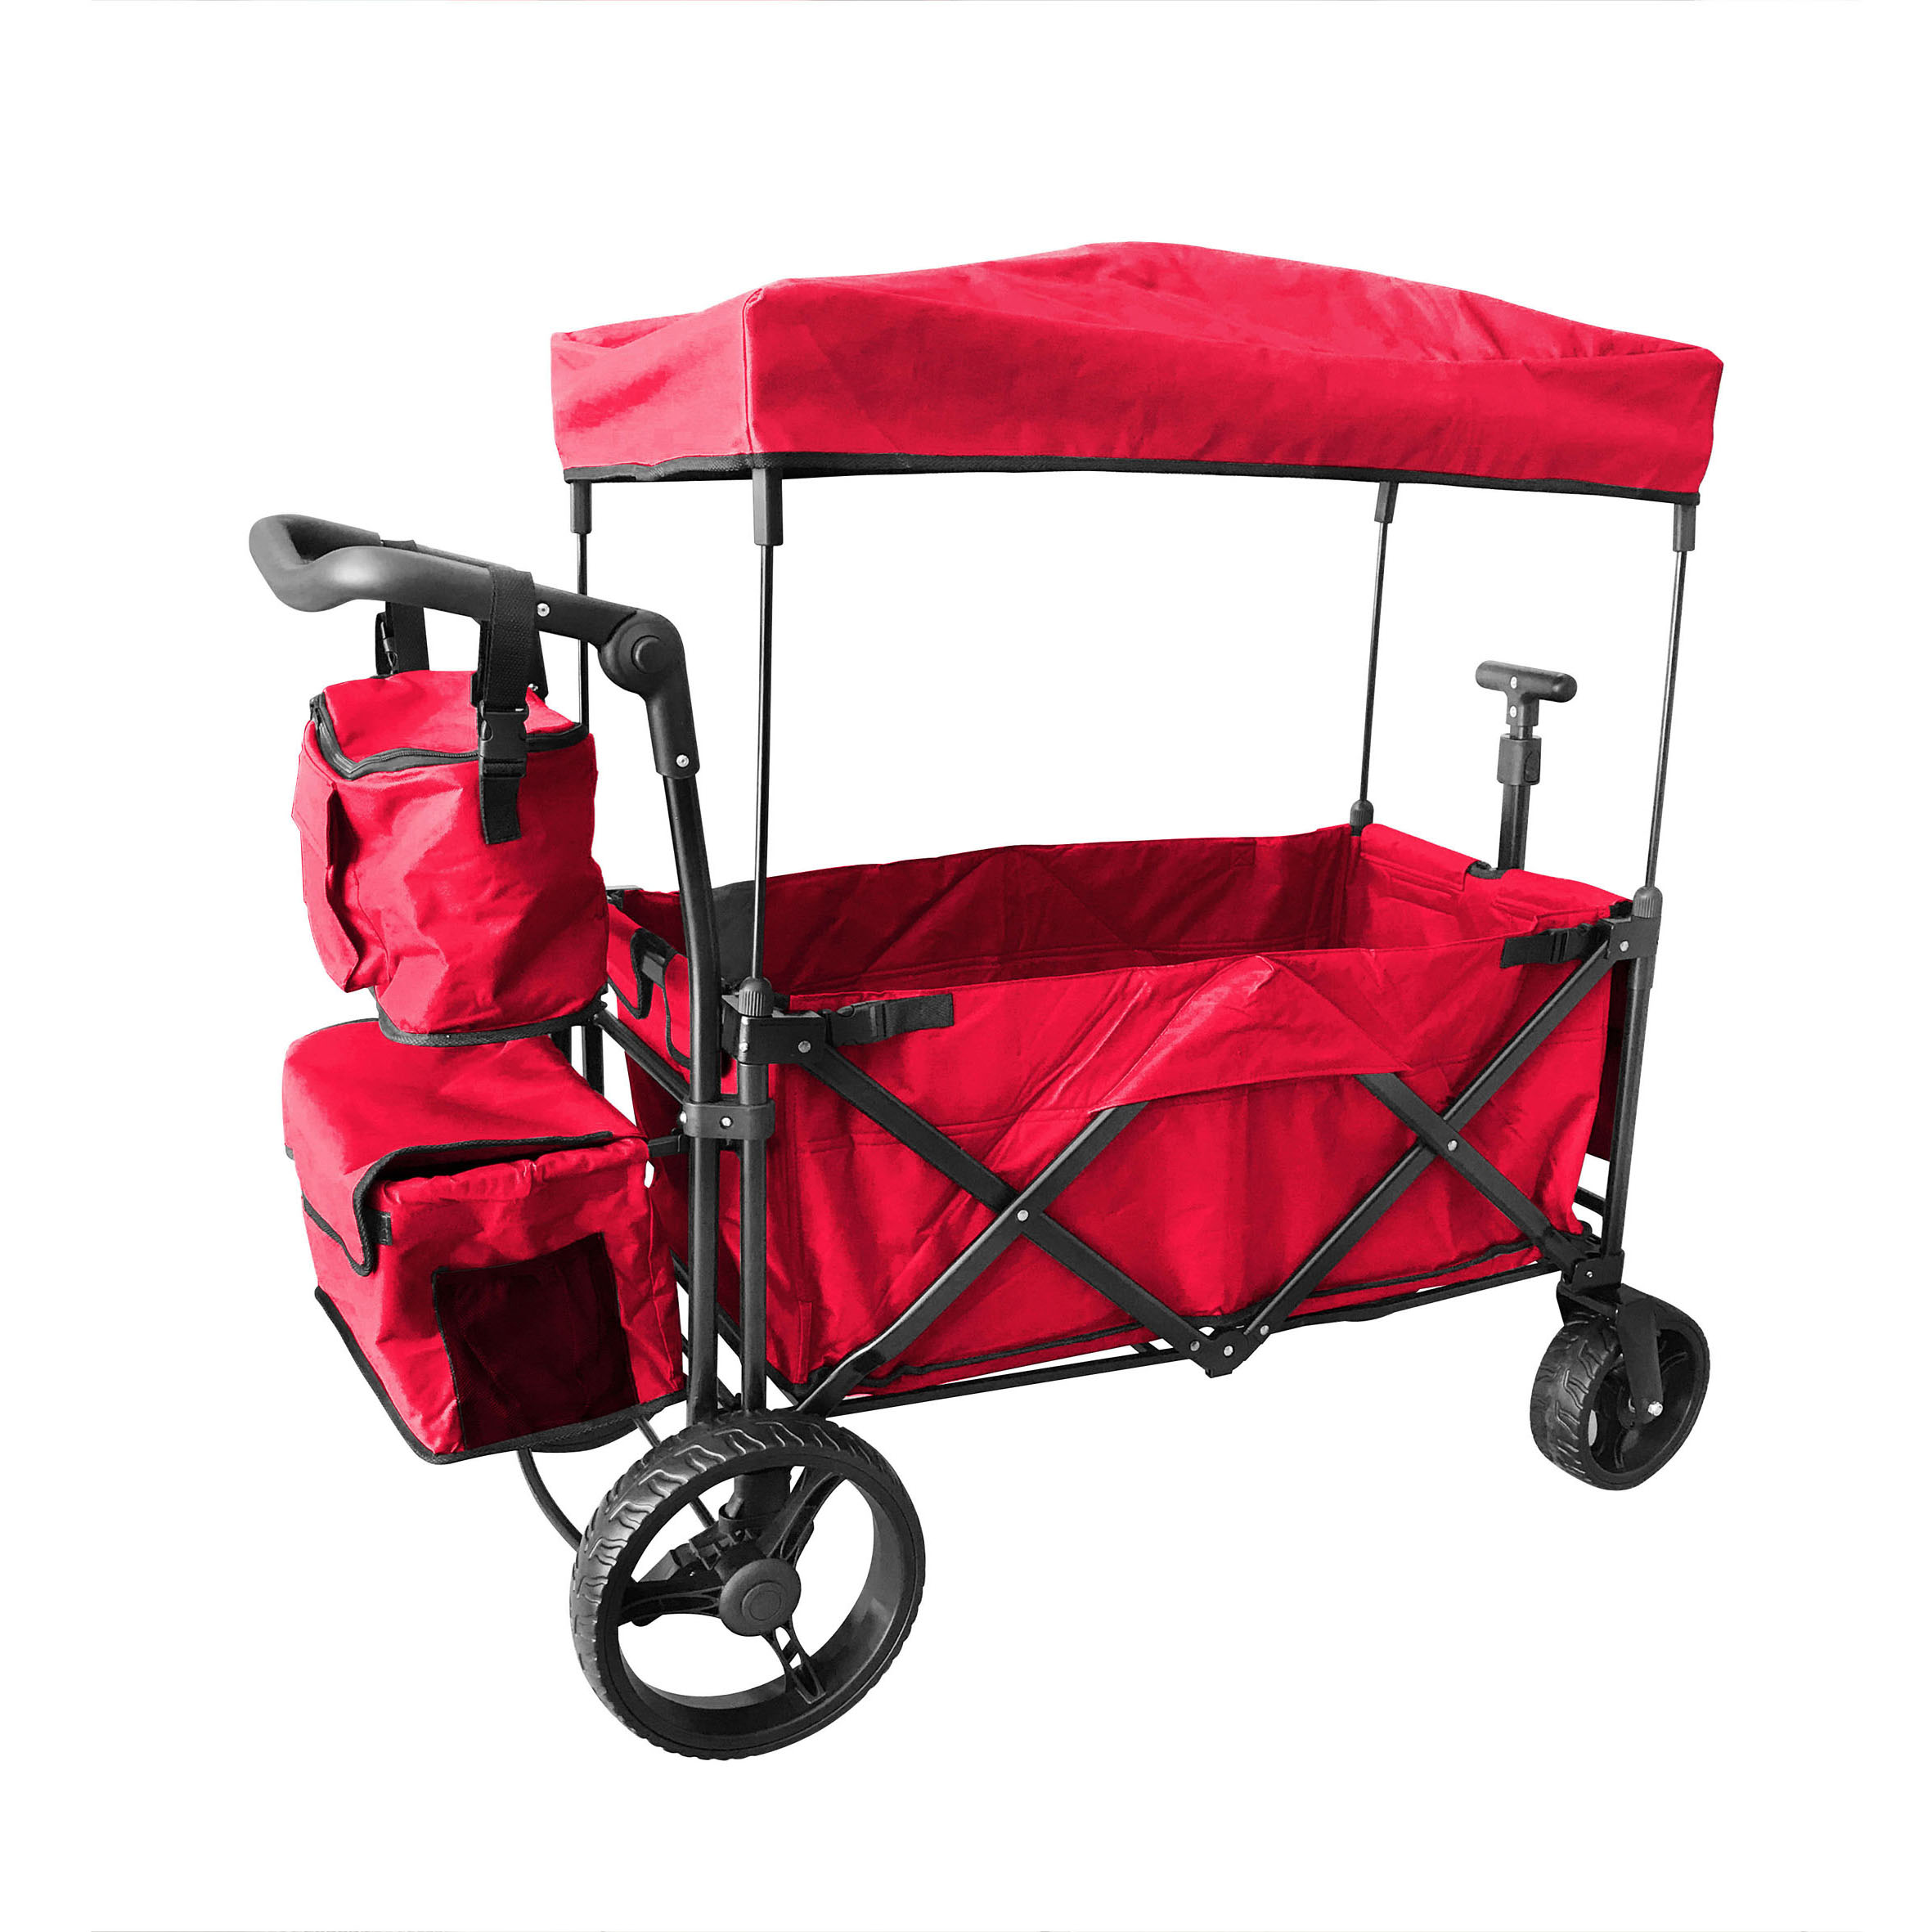 RED OUTDOOR FOLDING PUSH WAGON CANOPY GARDEN UTILITY TRAVEL CART TIRES BRAKE by